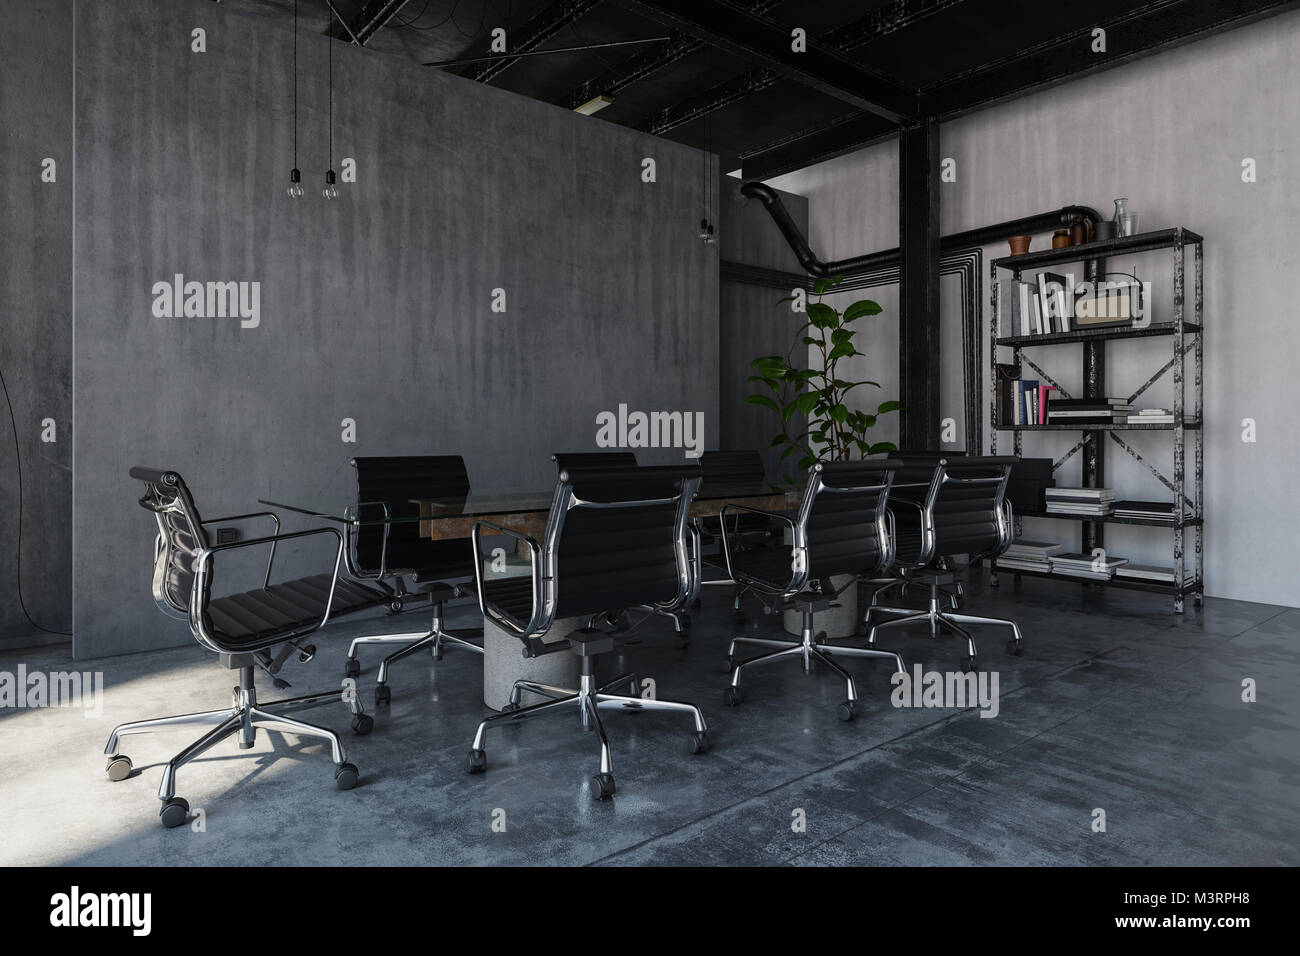 An industrial style, empty polished concrete office room with table ...